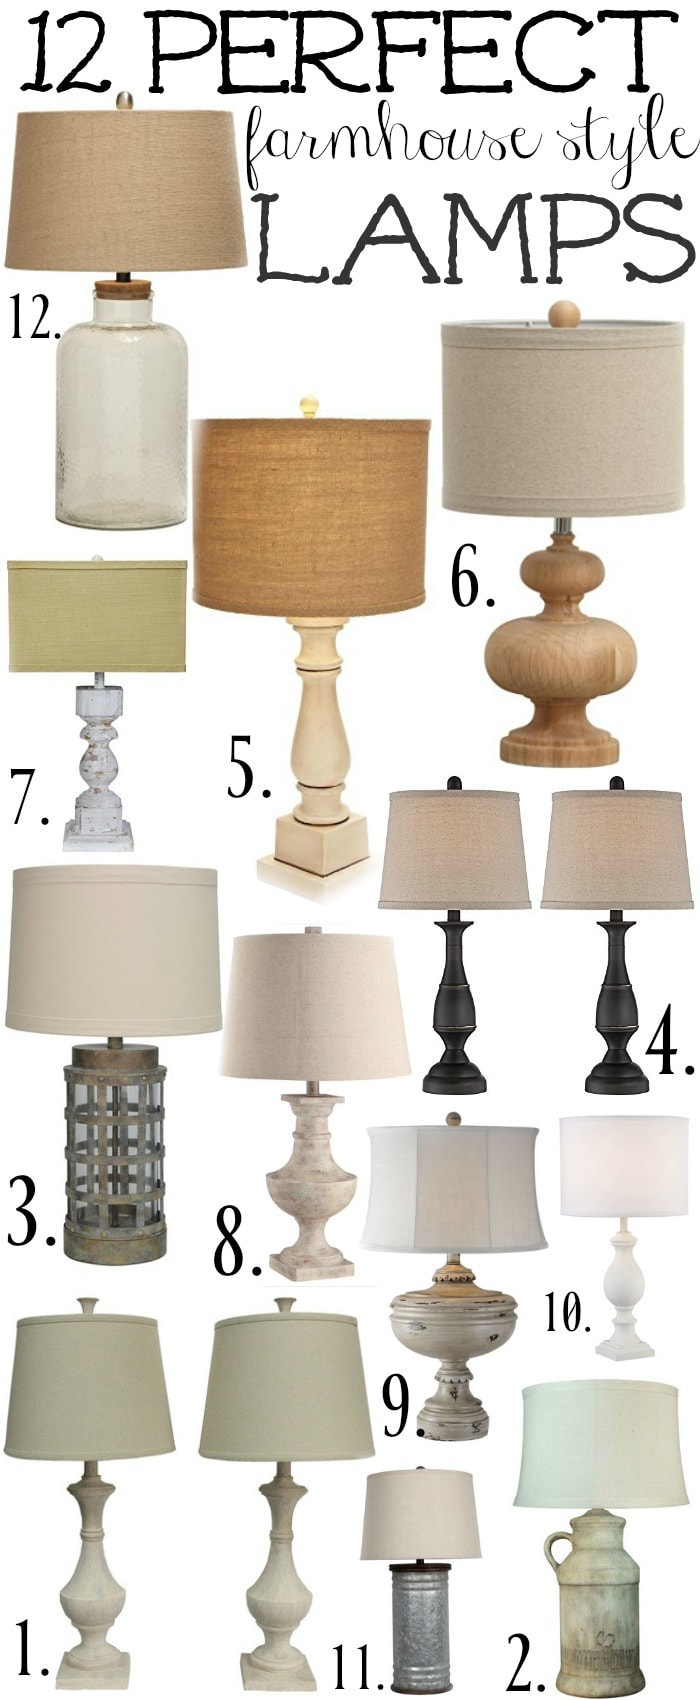 12 Perfect Farmhouse Style Lamps